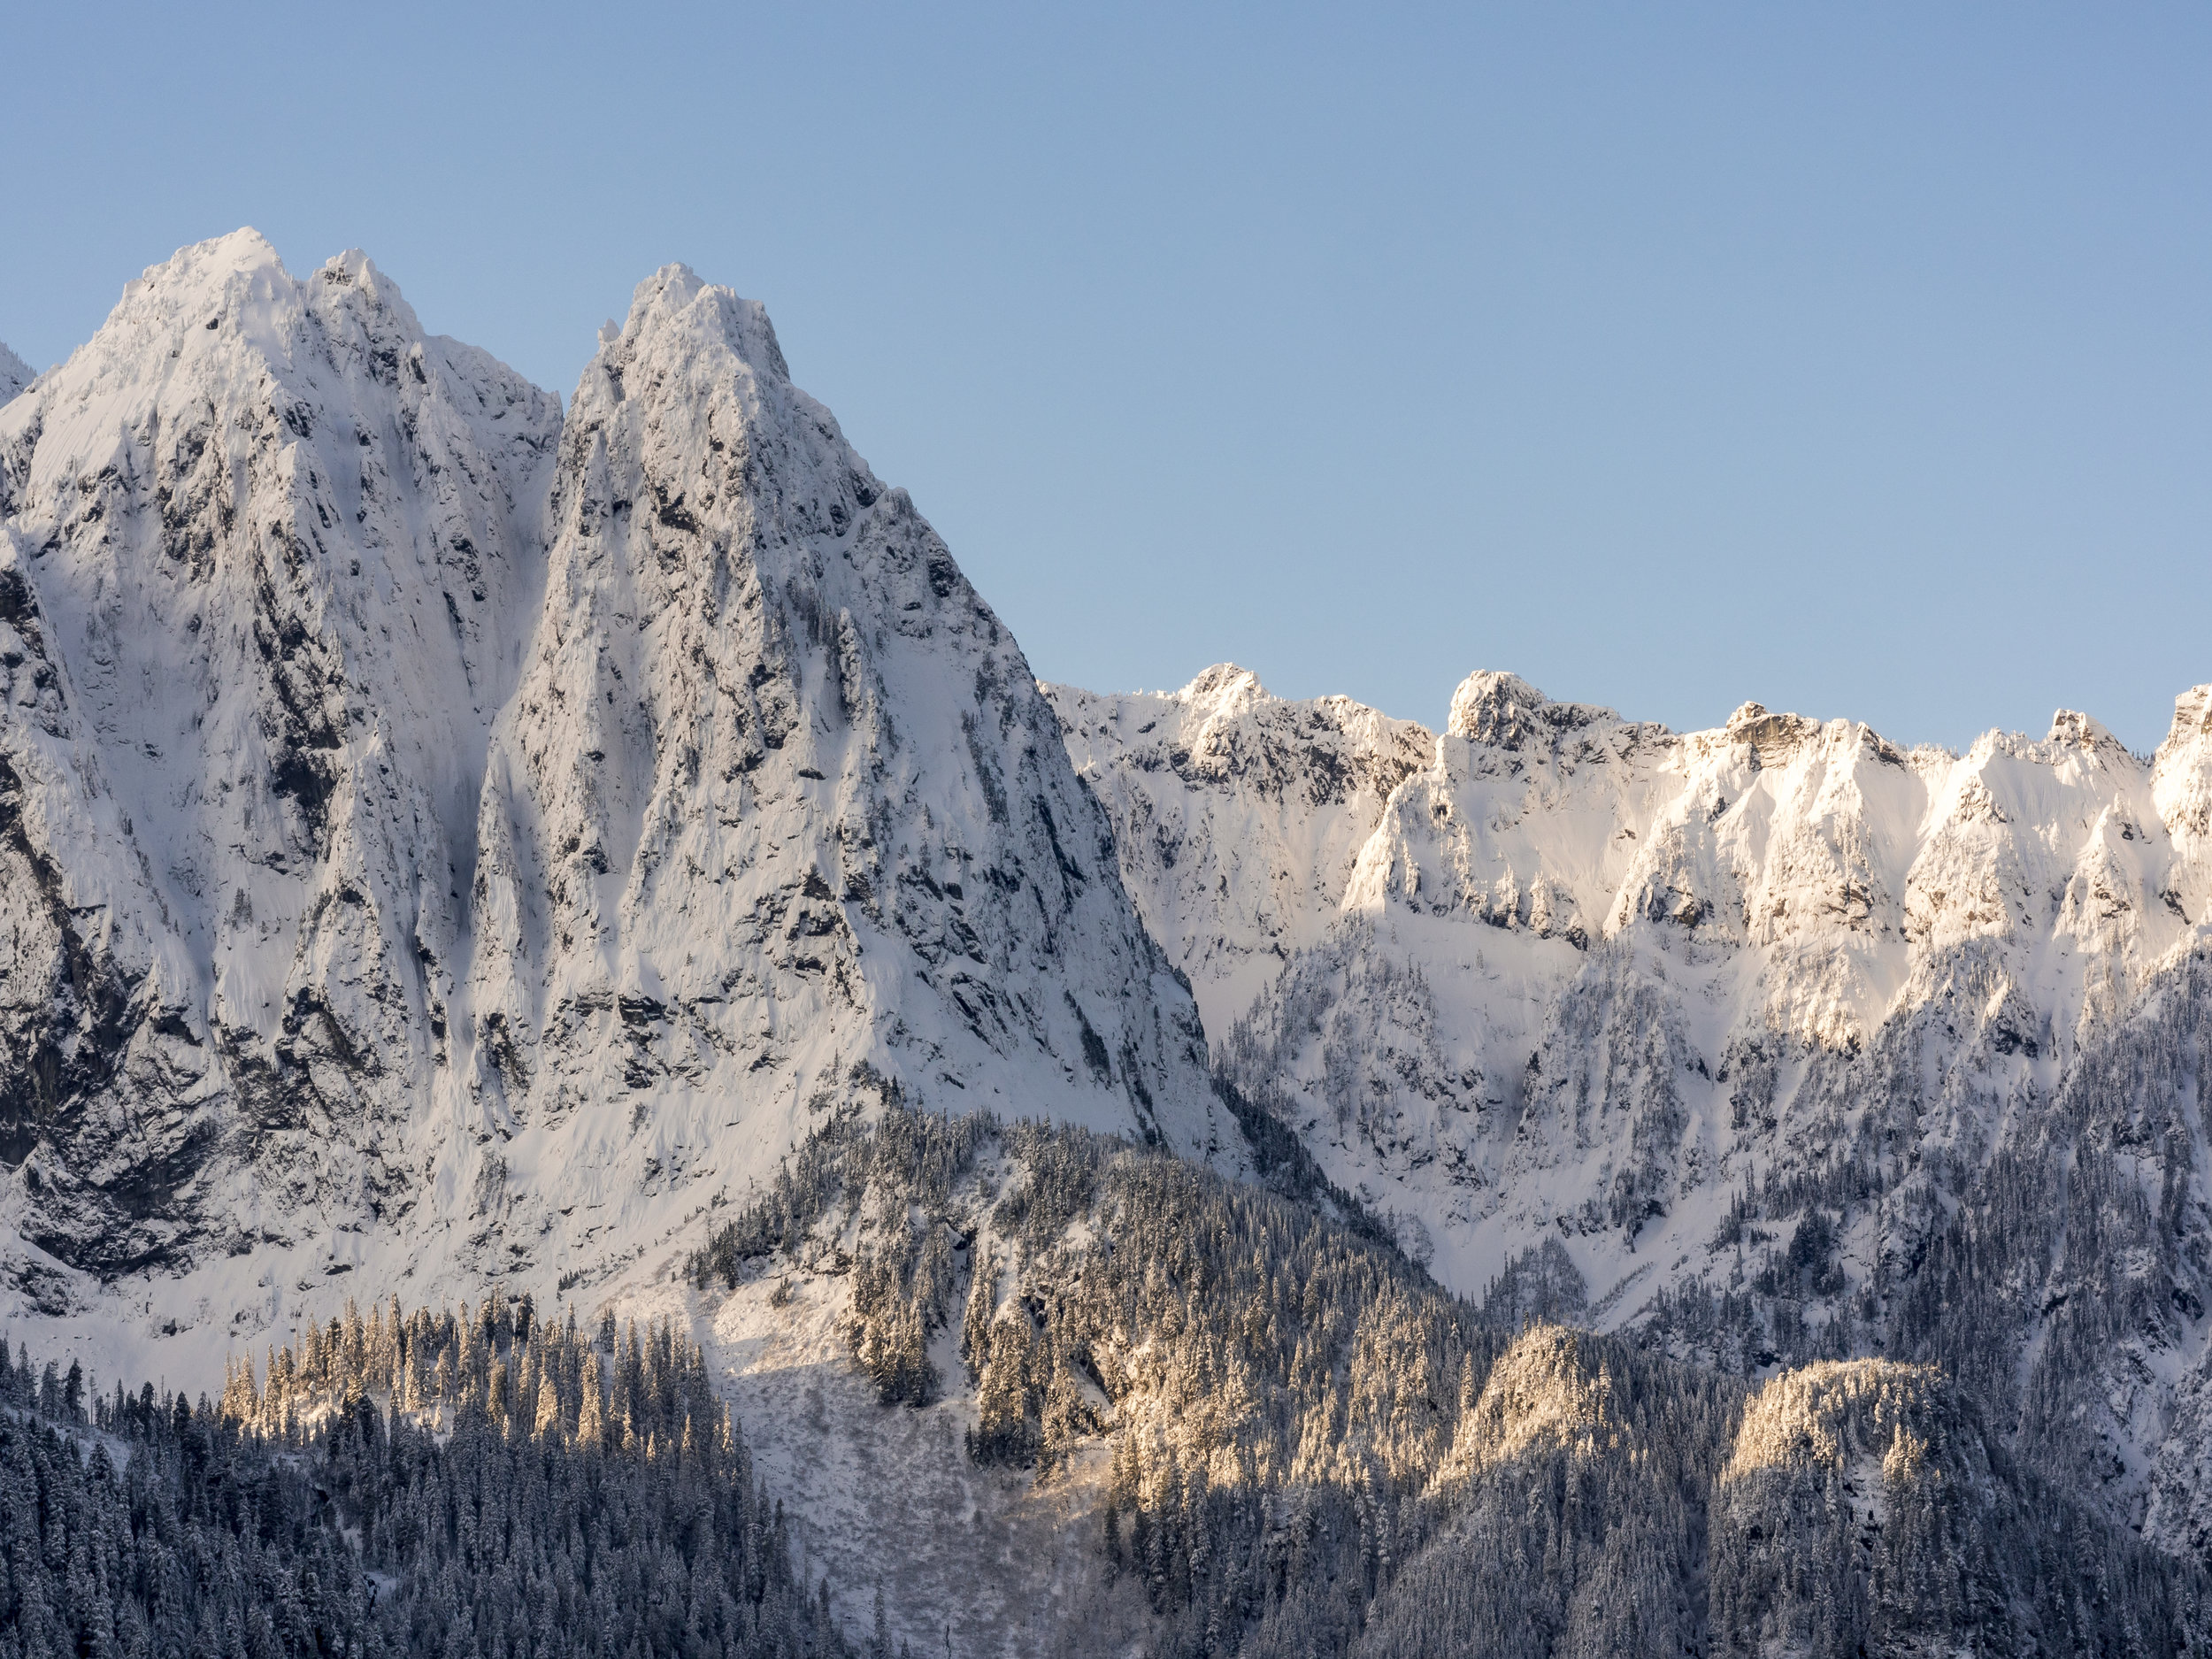 Snow Covered Jagged Peaks with Blue Sky Background in North Cascade Mountain Range